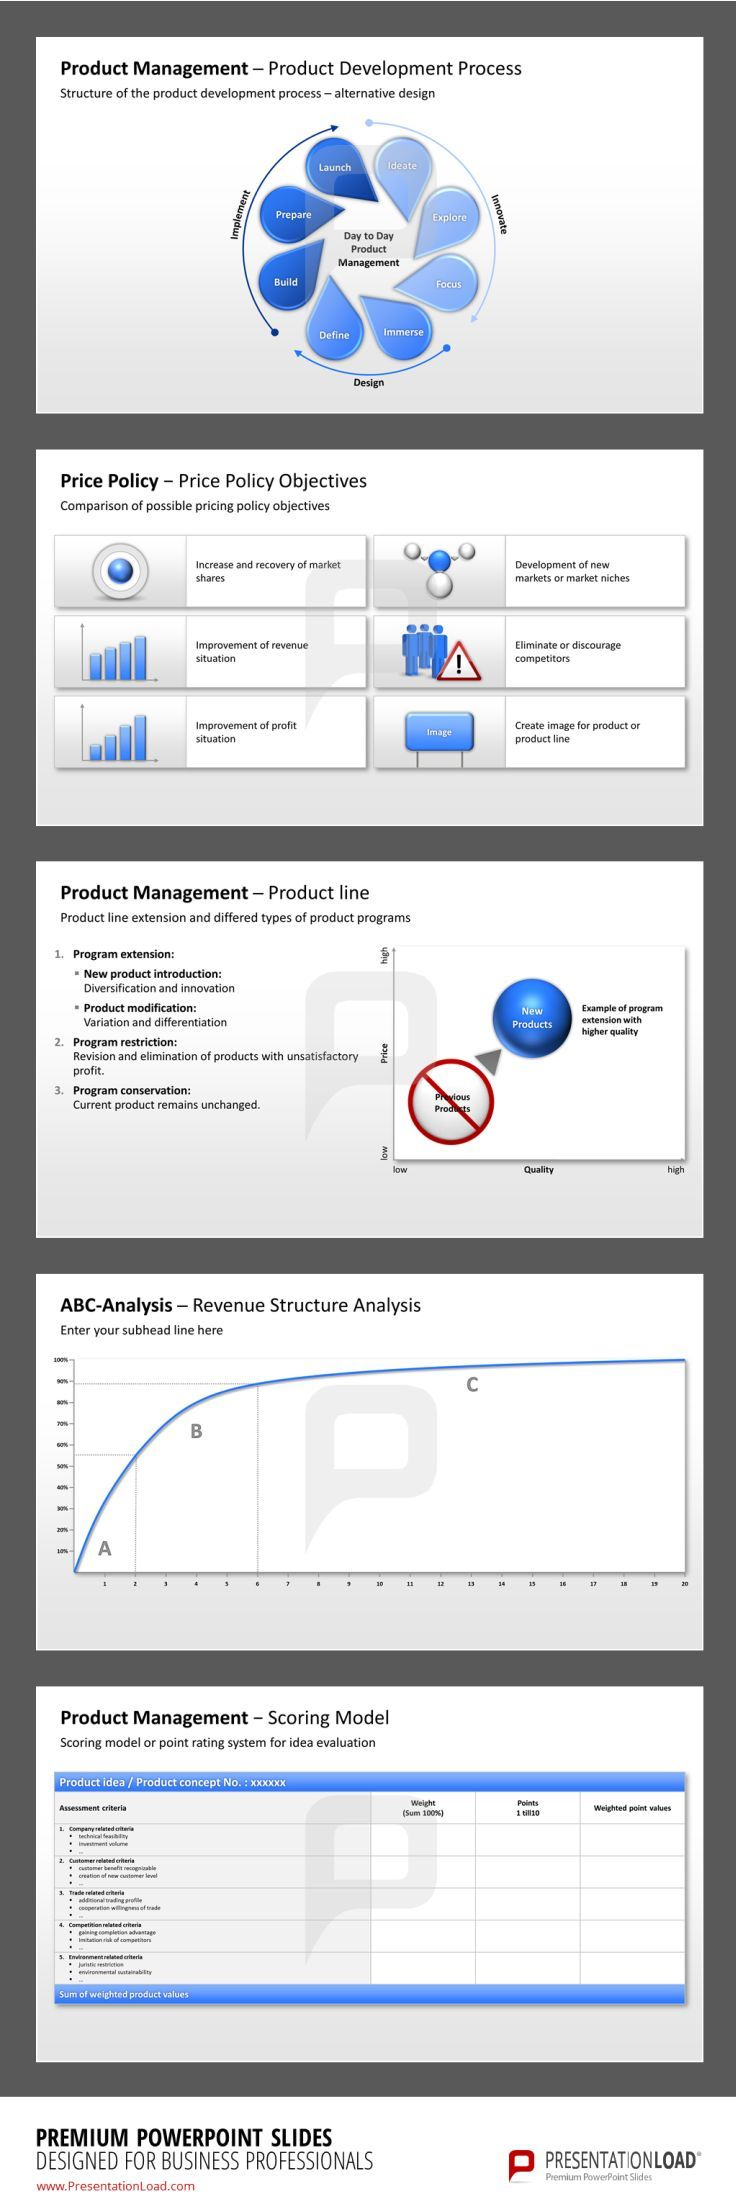 Product Management Powerpoint Template Influencing Factors And